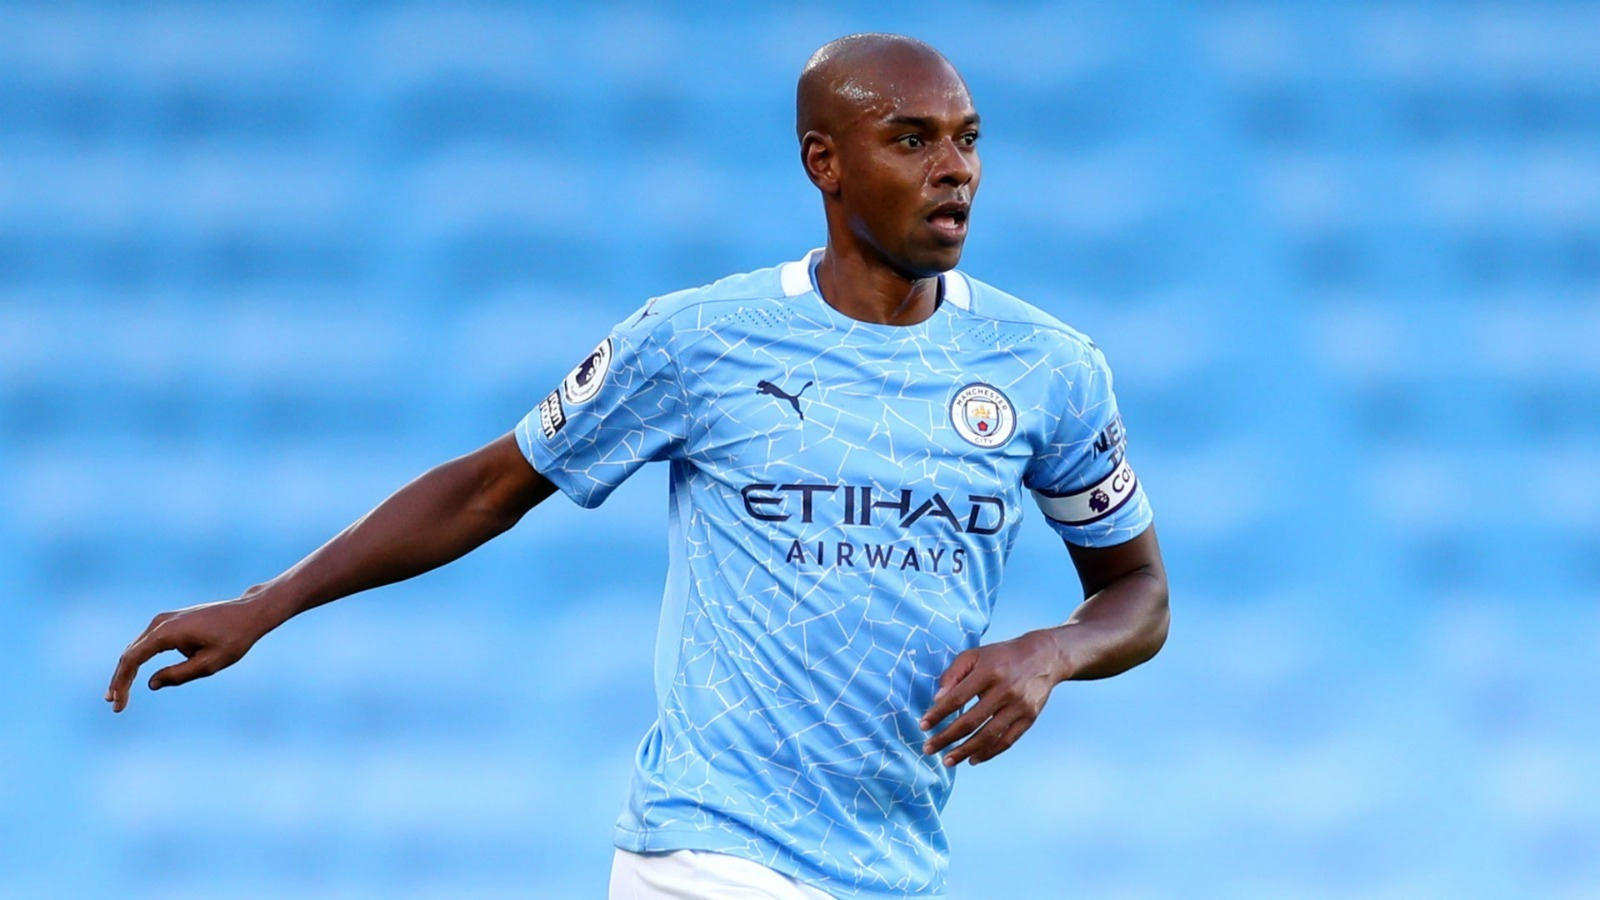 Man City News | Fernandinho sends a message to Manchester City fans ahead of a clash against Chelsea in the final